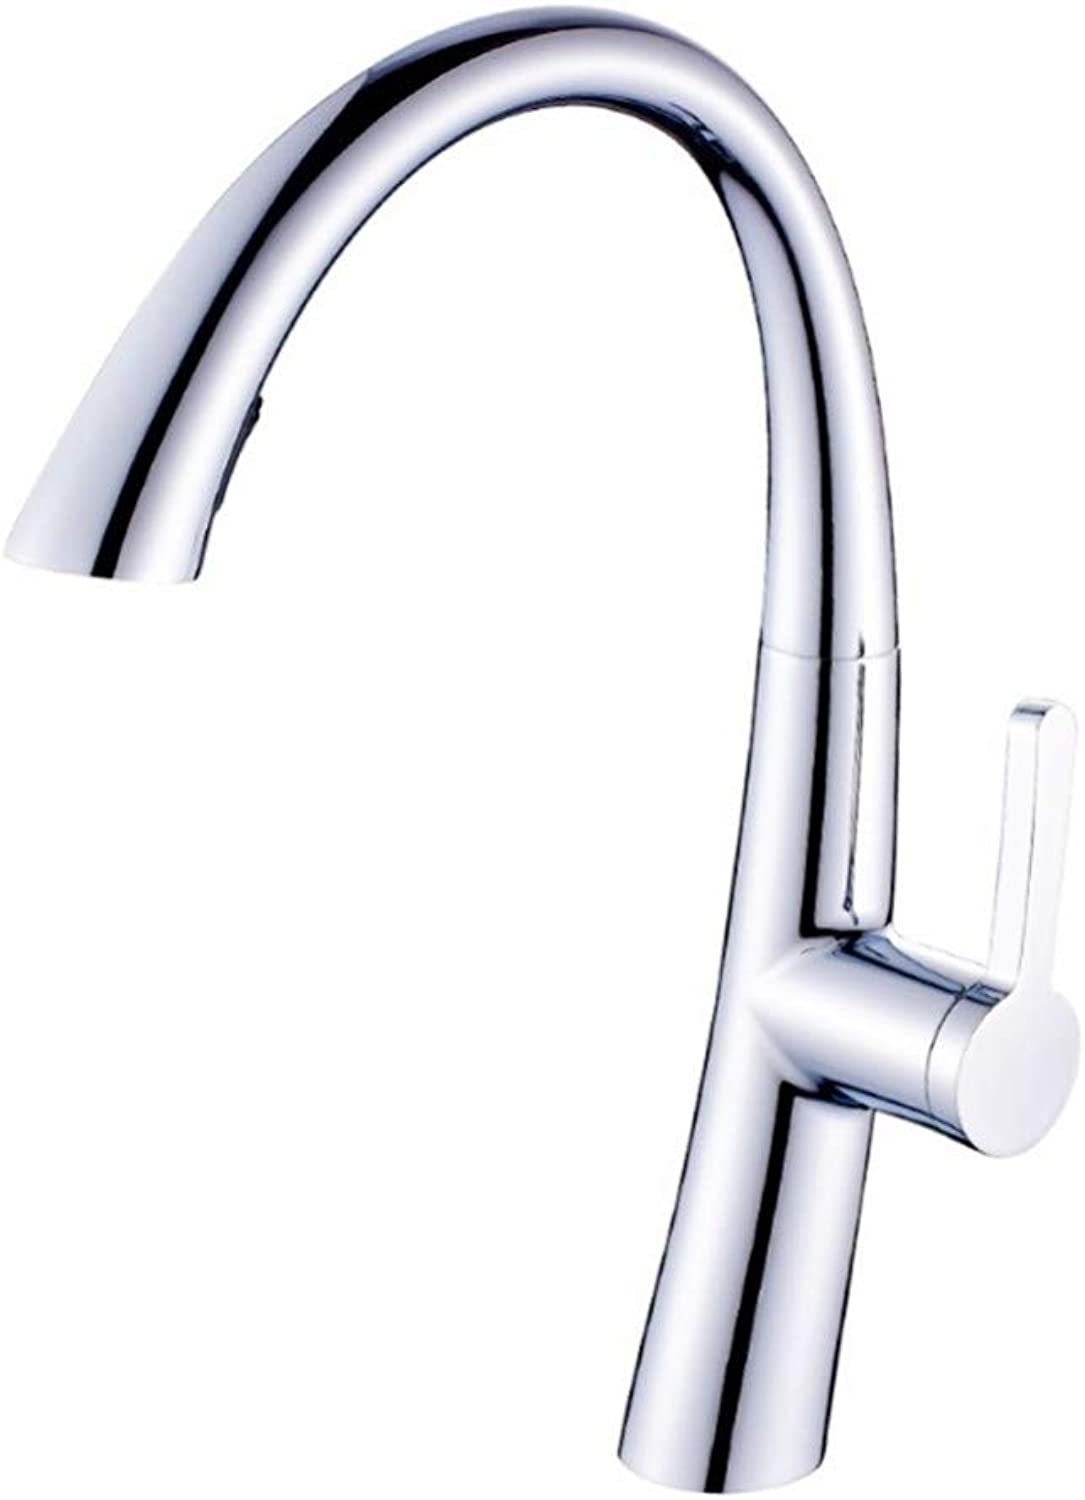 Kitchen Sink Taps Bathroom Taps Pull The Kitchen Faucet Wash Dishes Wash Dishes Turn The Tap.